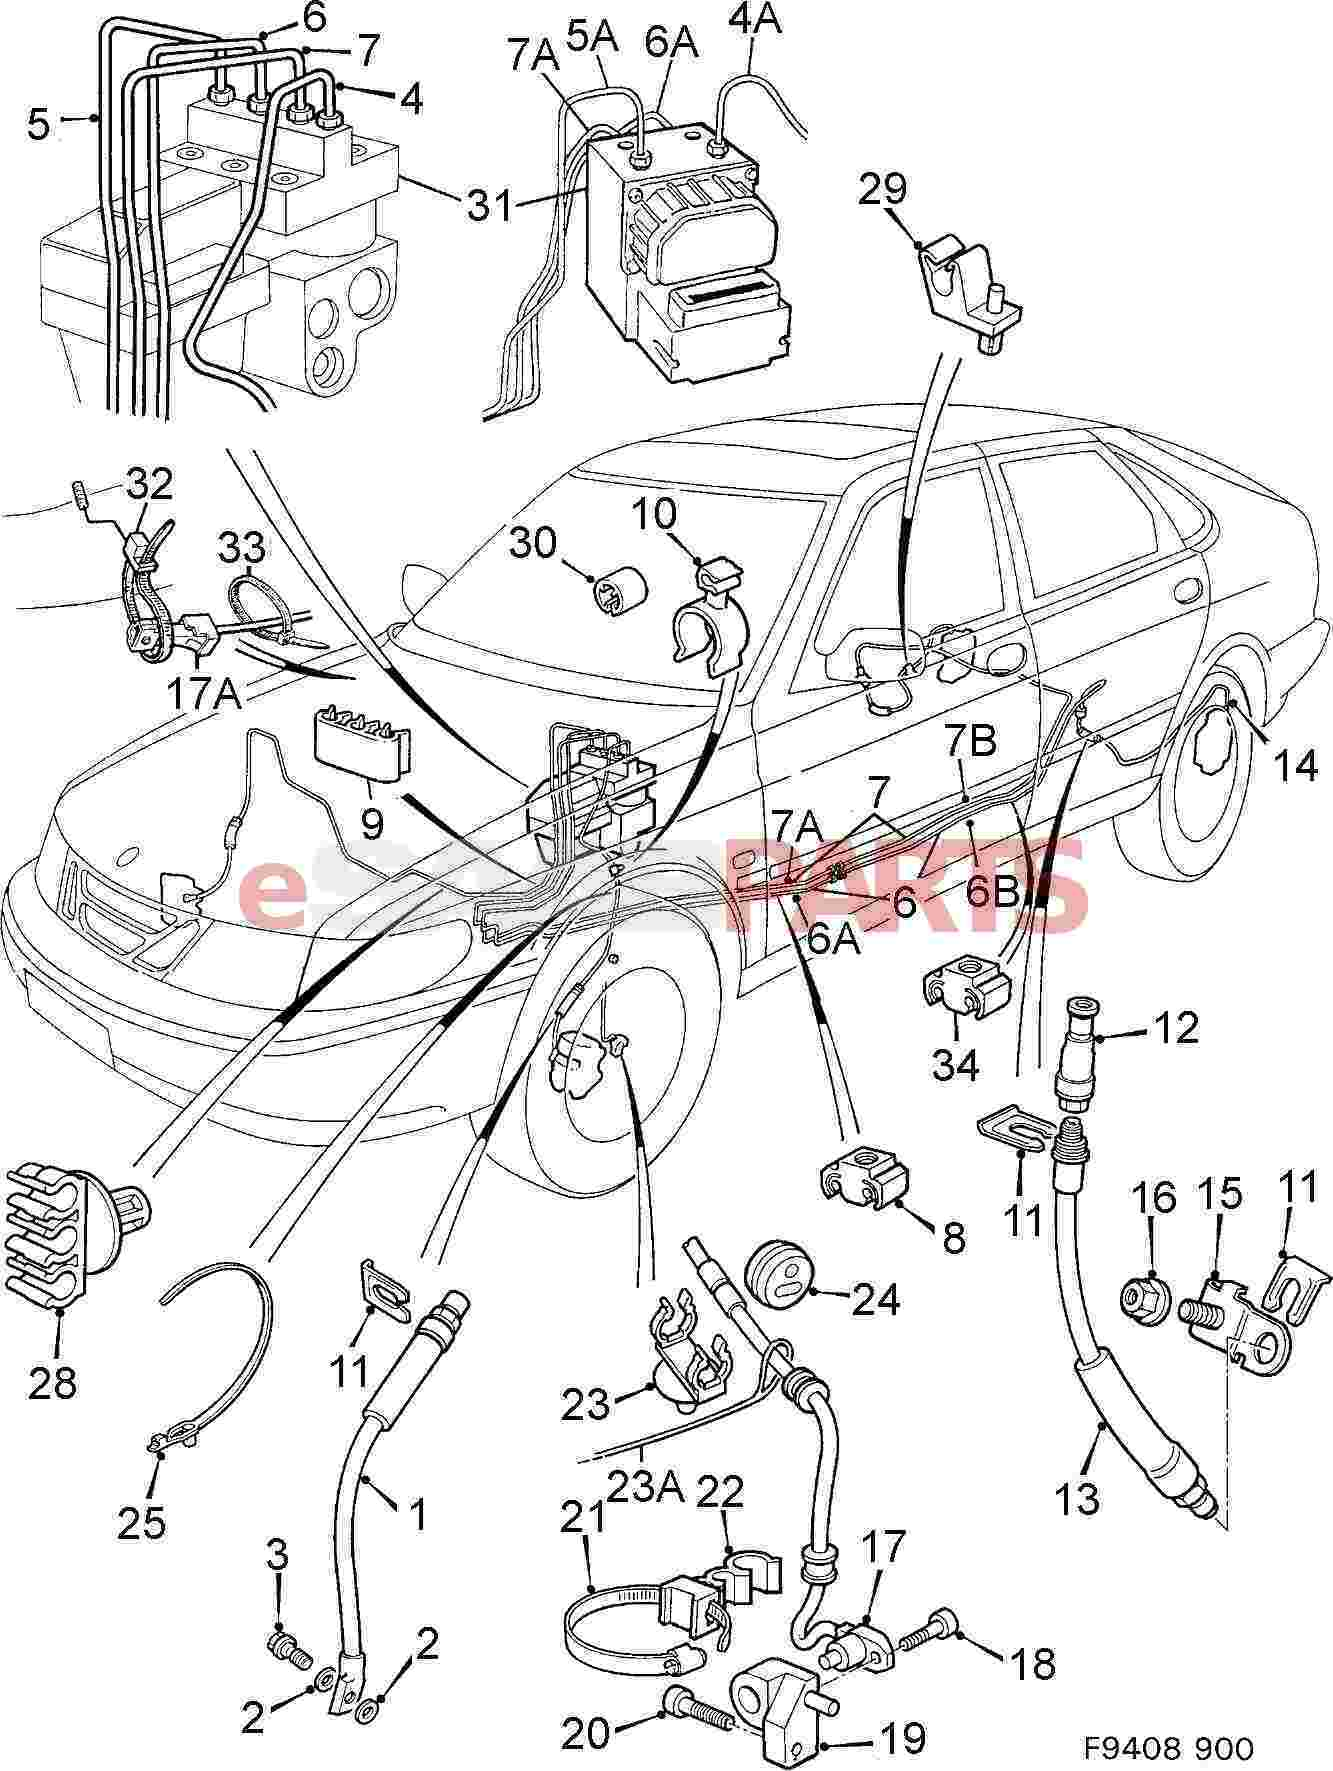 saab brakes diagram wiring diagram